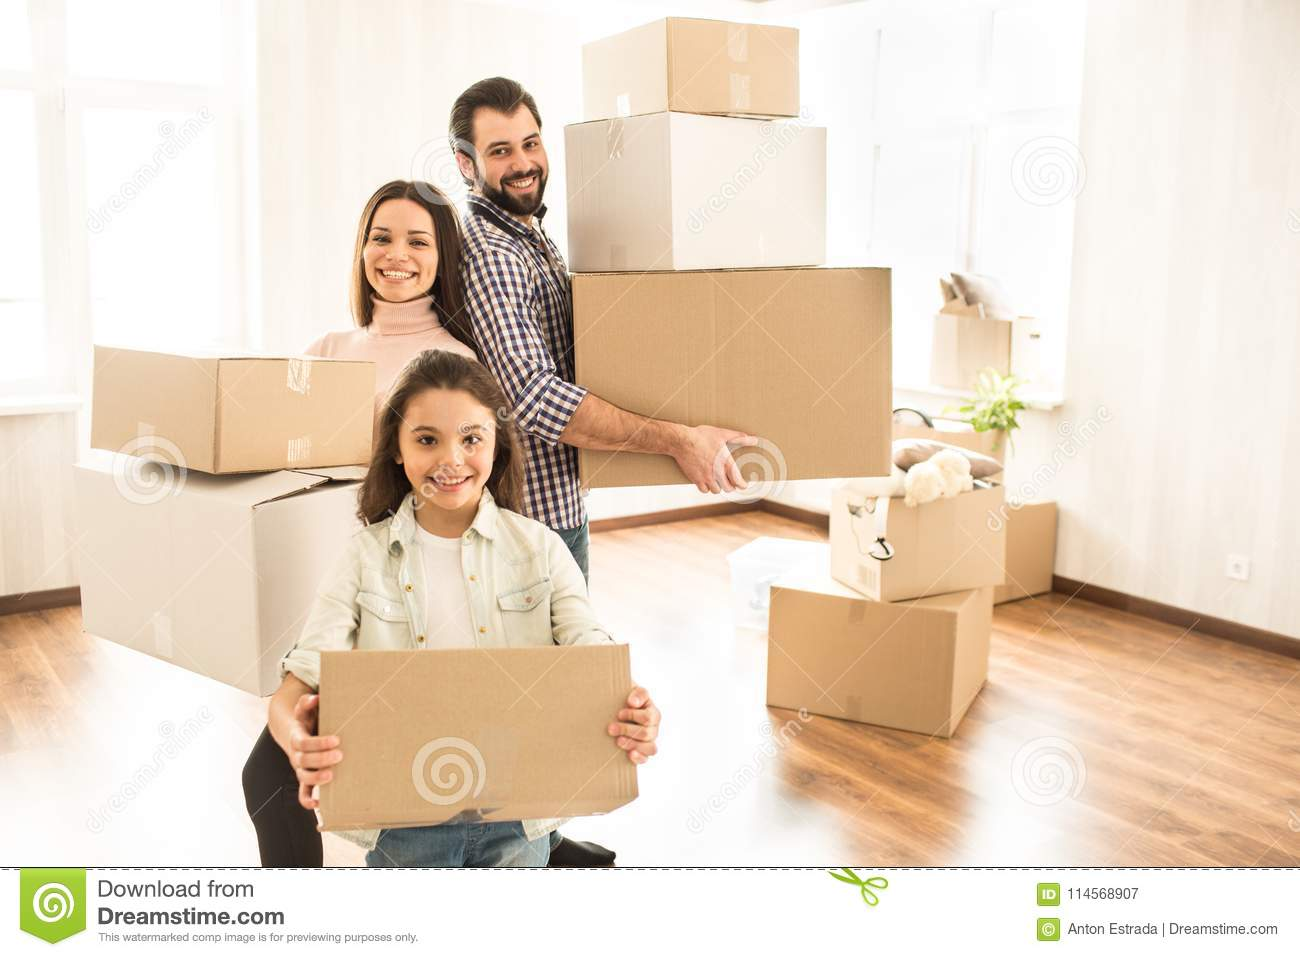 Nice shot of two parents and happy child holding boxes and looking to the camera. They are standing very close to each